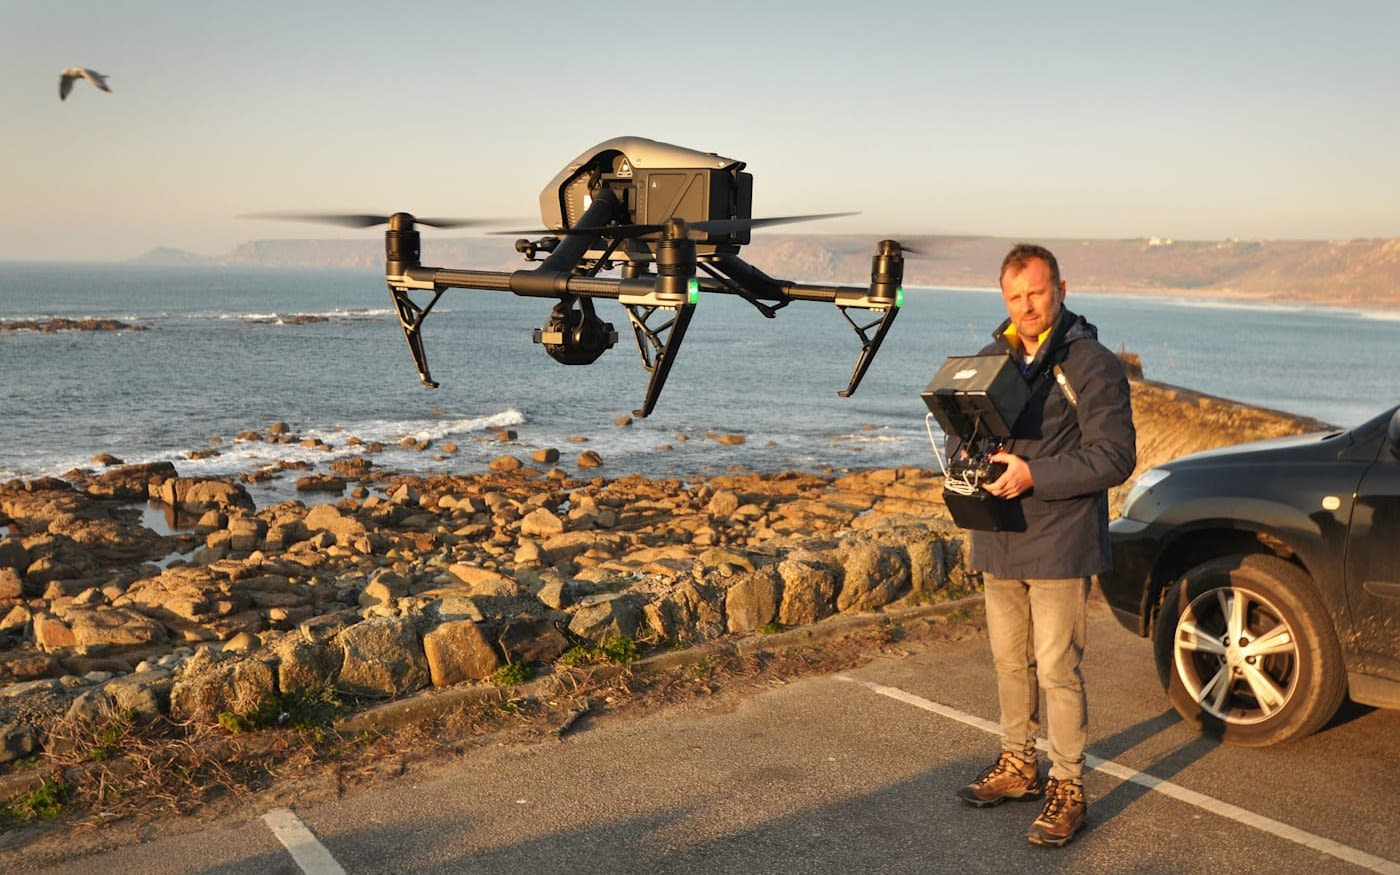 Drone hovering in a car park by the sea, with the pilot standing behind controlling the aircraft.